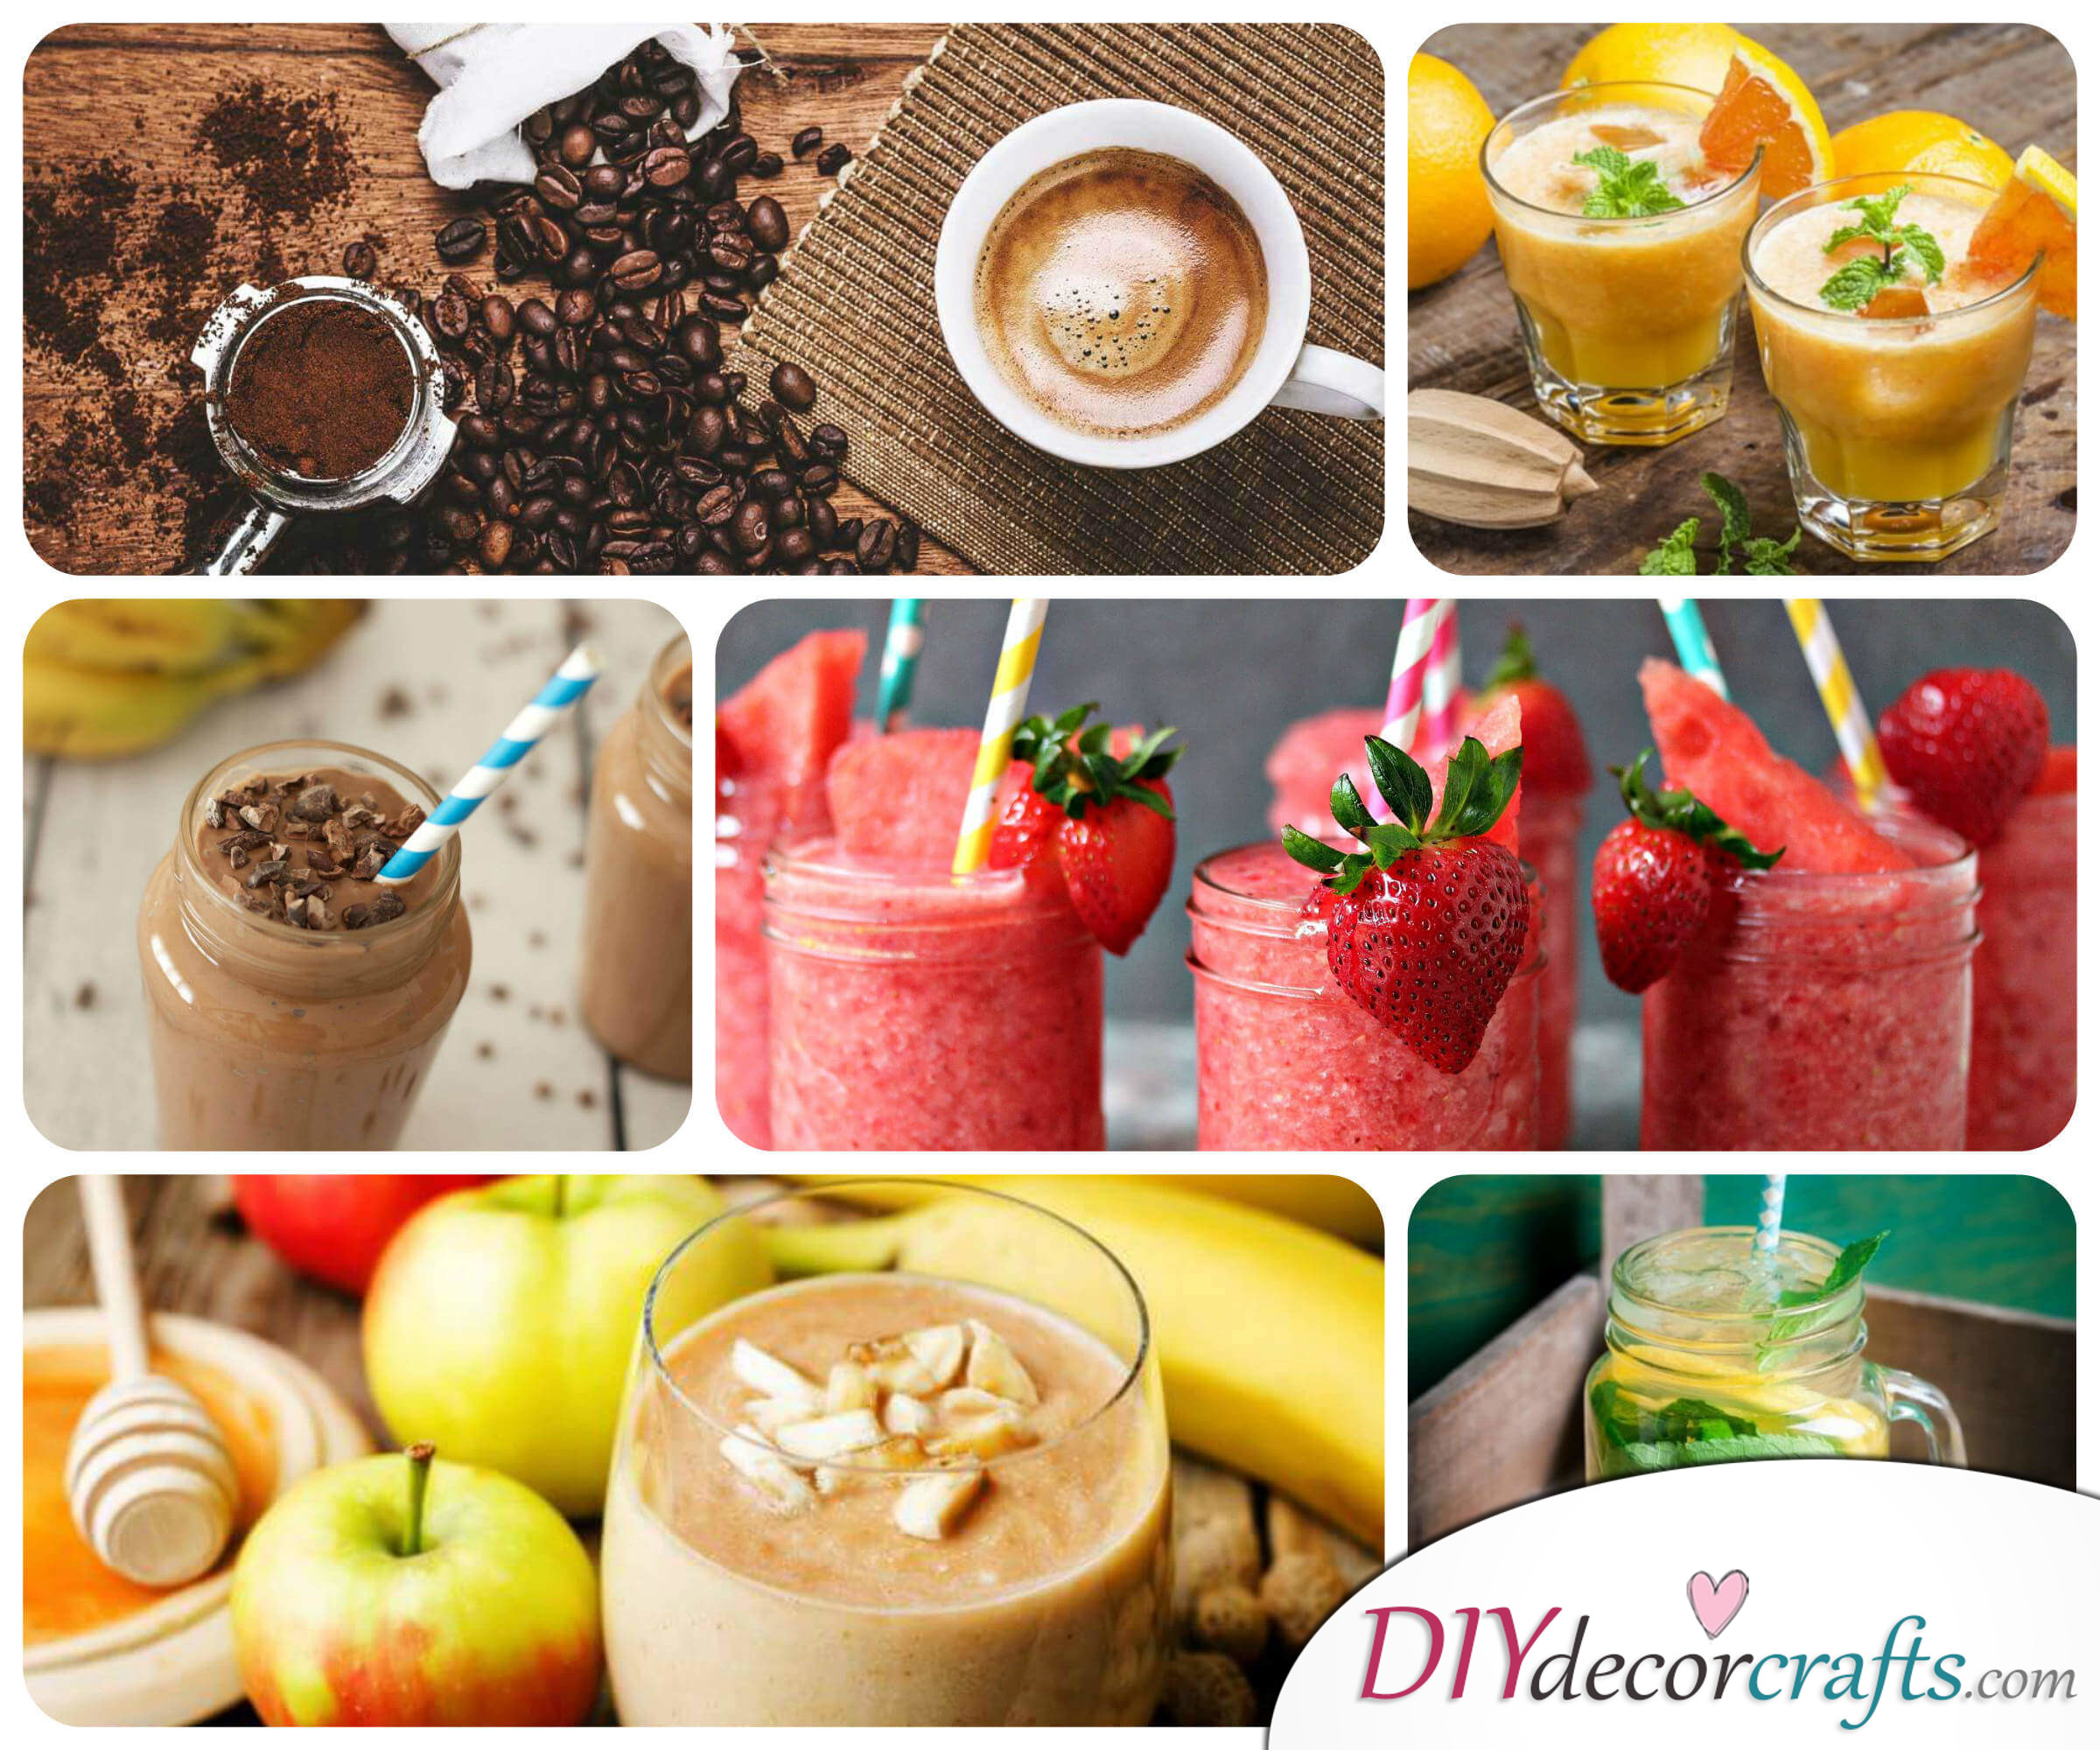 8 Drinks to Boost Metabolism and Tone Up Your Body